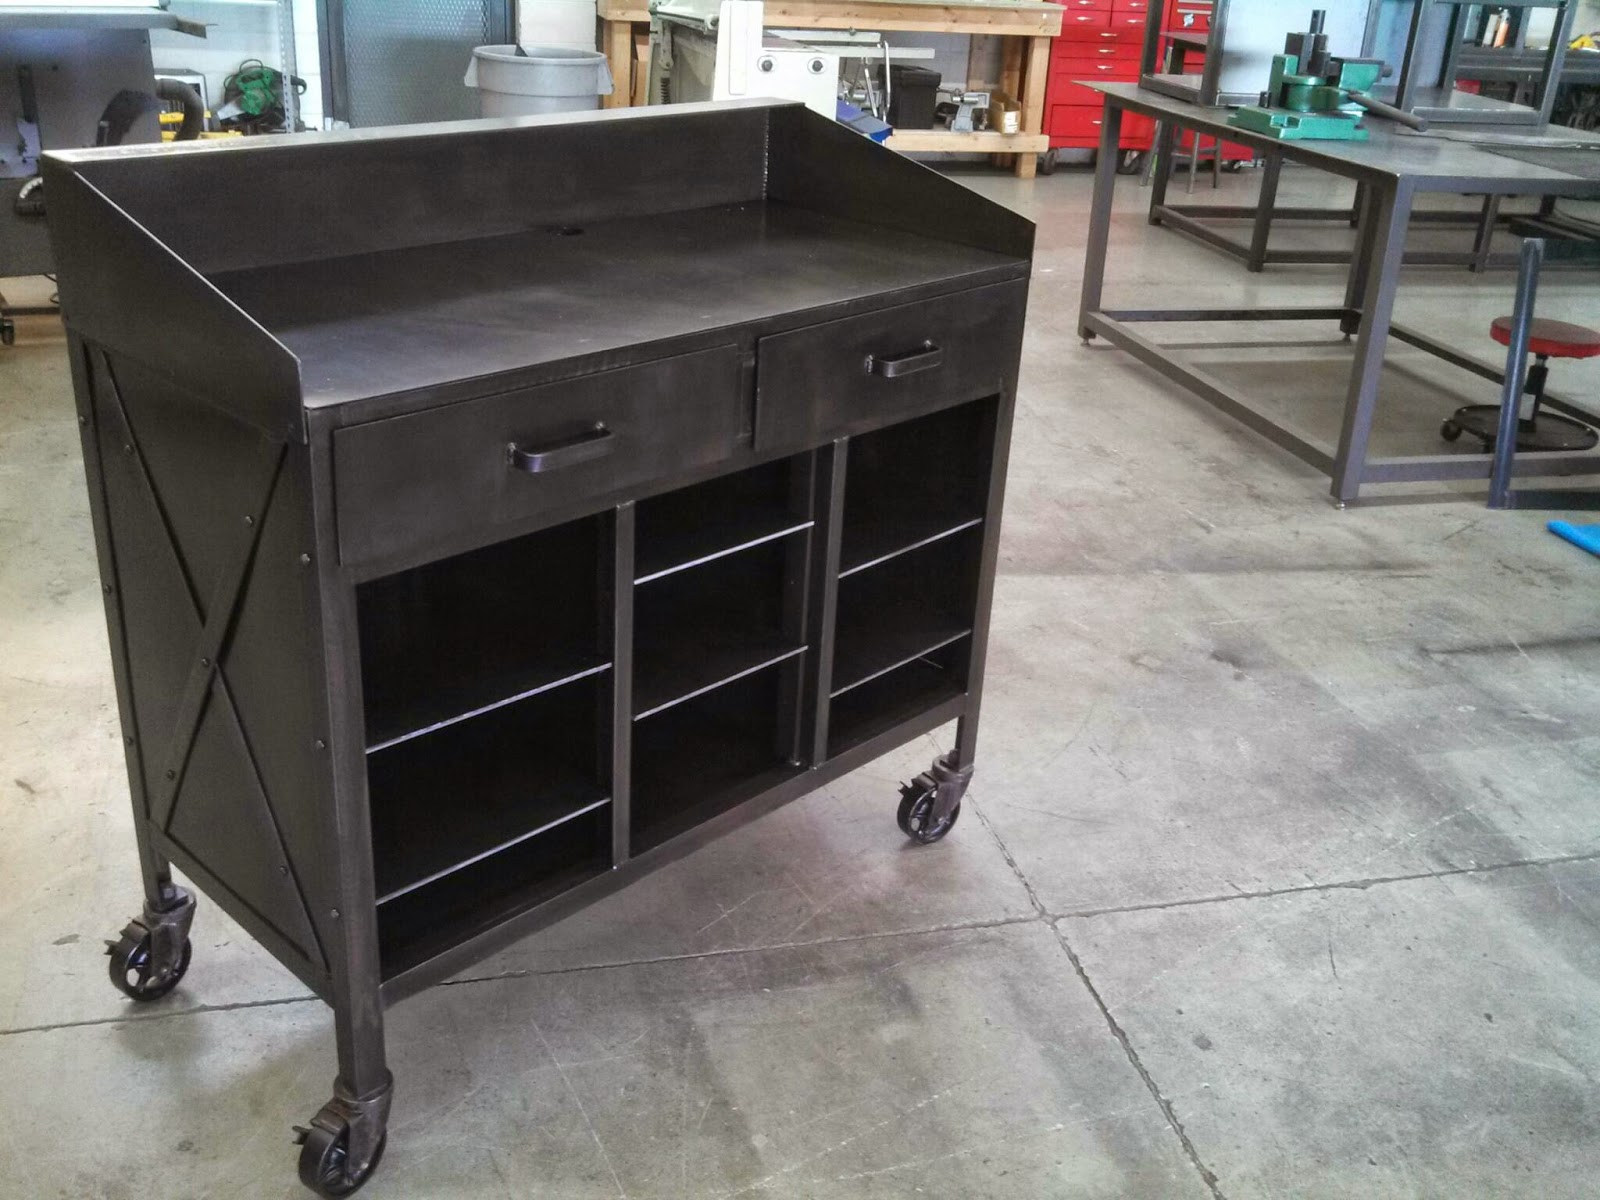 Real industrial edge furniture llc hostess stand